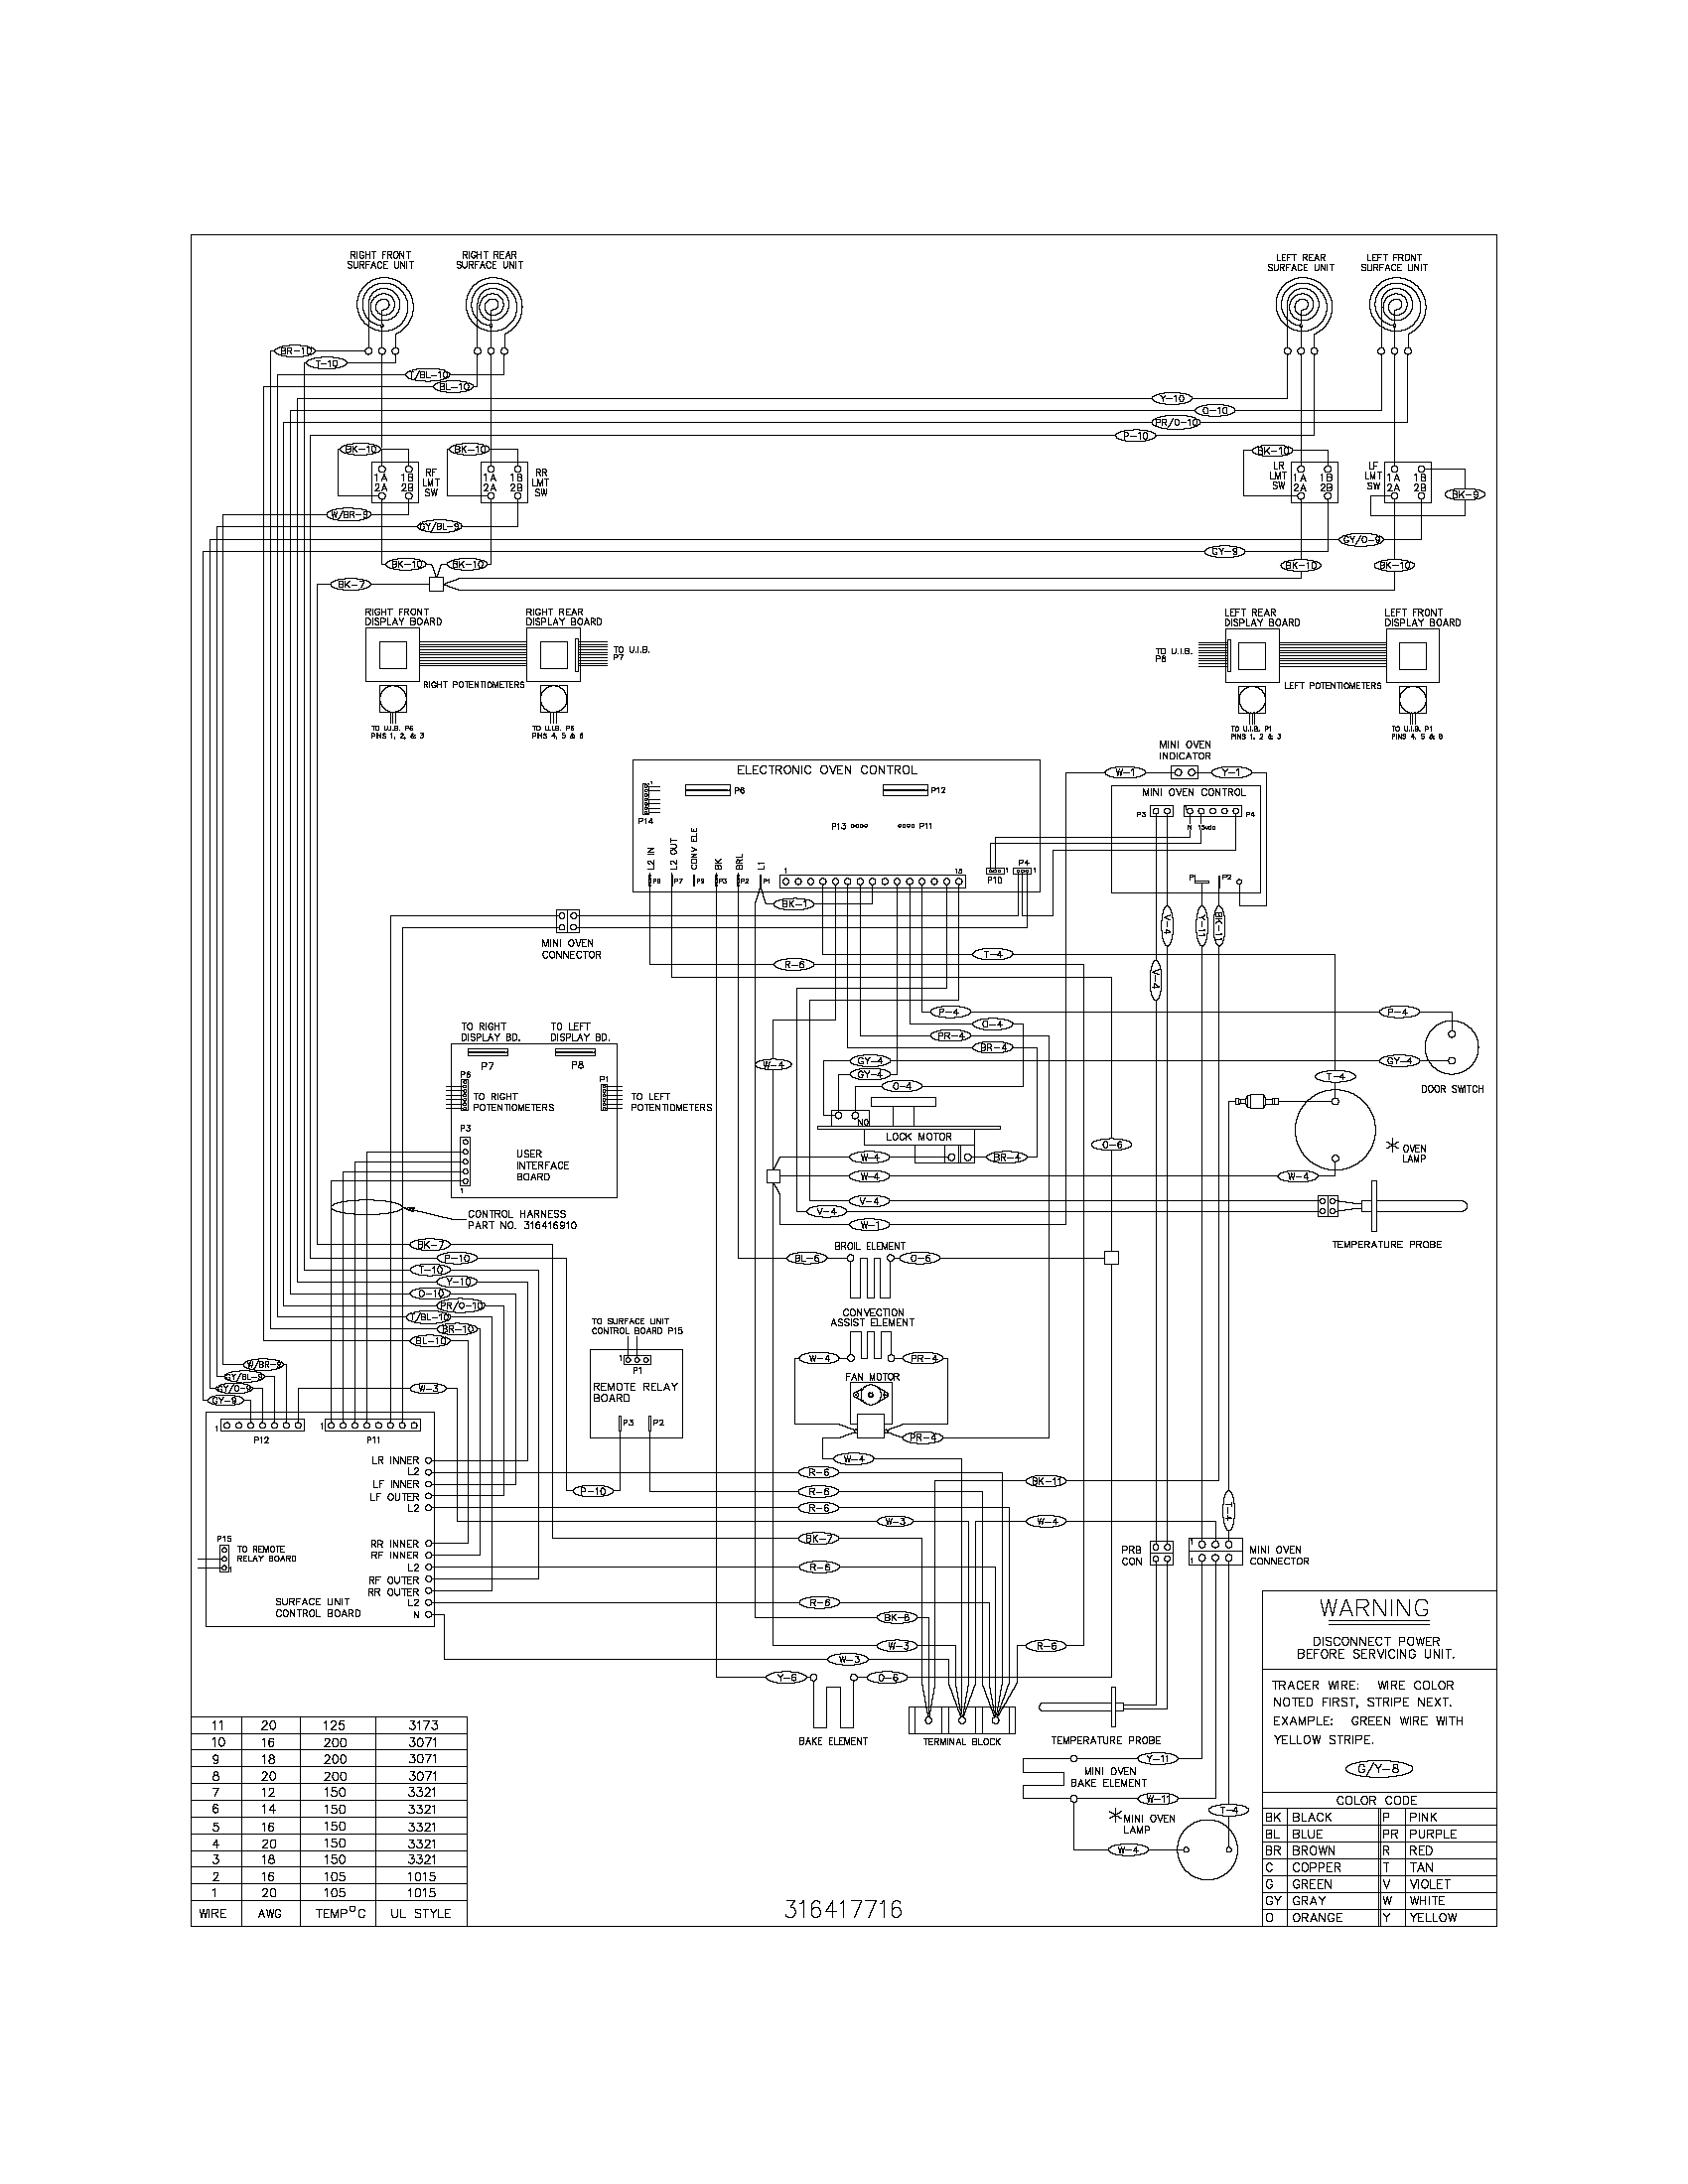 wiring diagram parts dimplex wiring diagram internet of things diagrams \u2022 free wiring wiring diagram for electric fireplace at webbmarketing.co